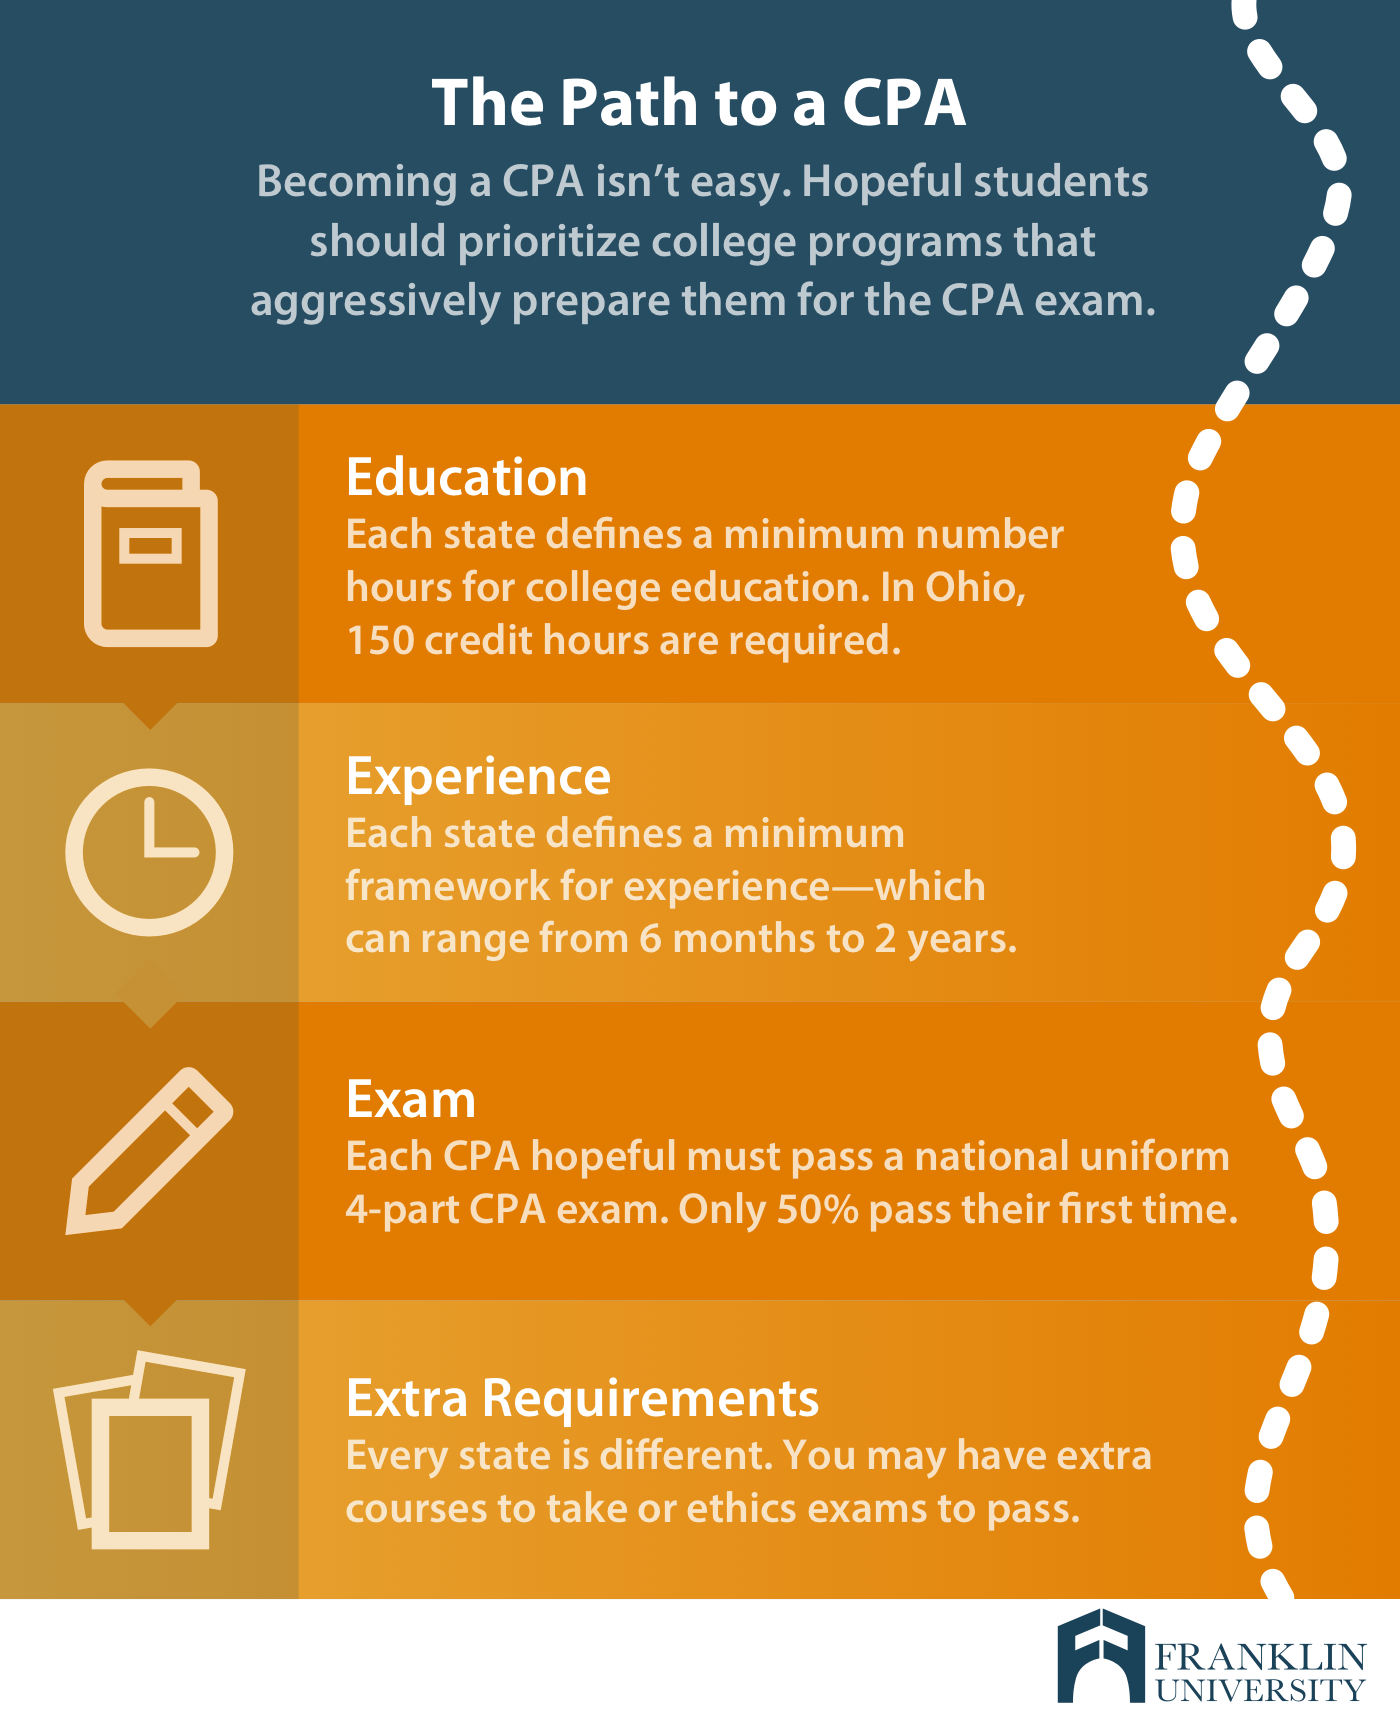 graphic describes the path to become a CPA